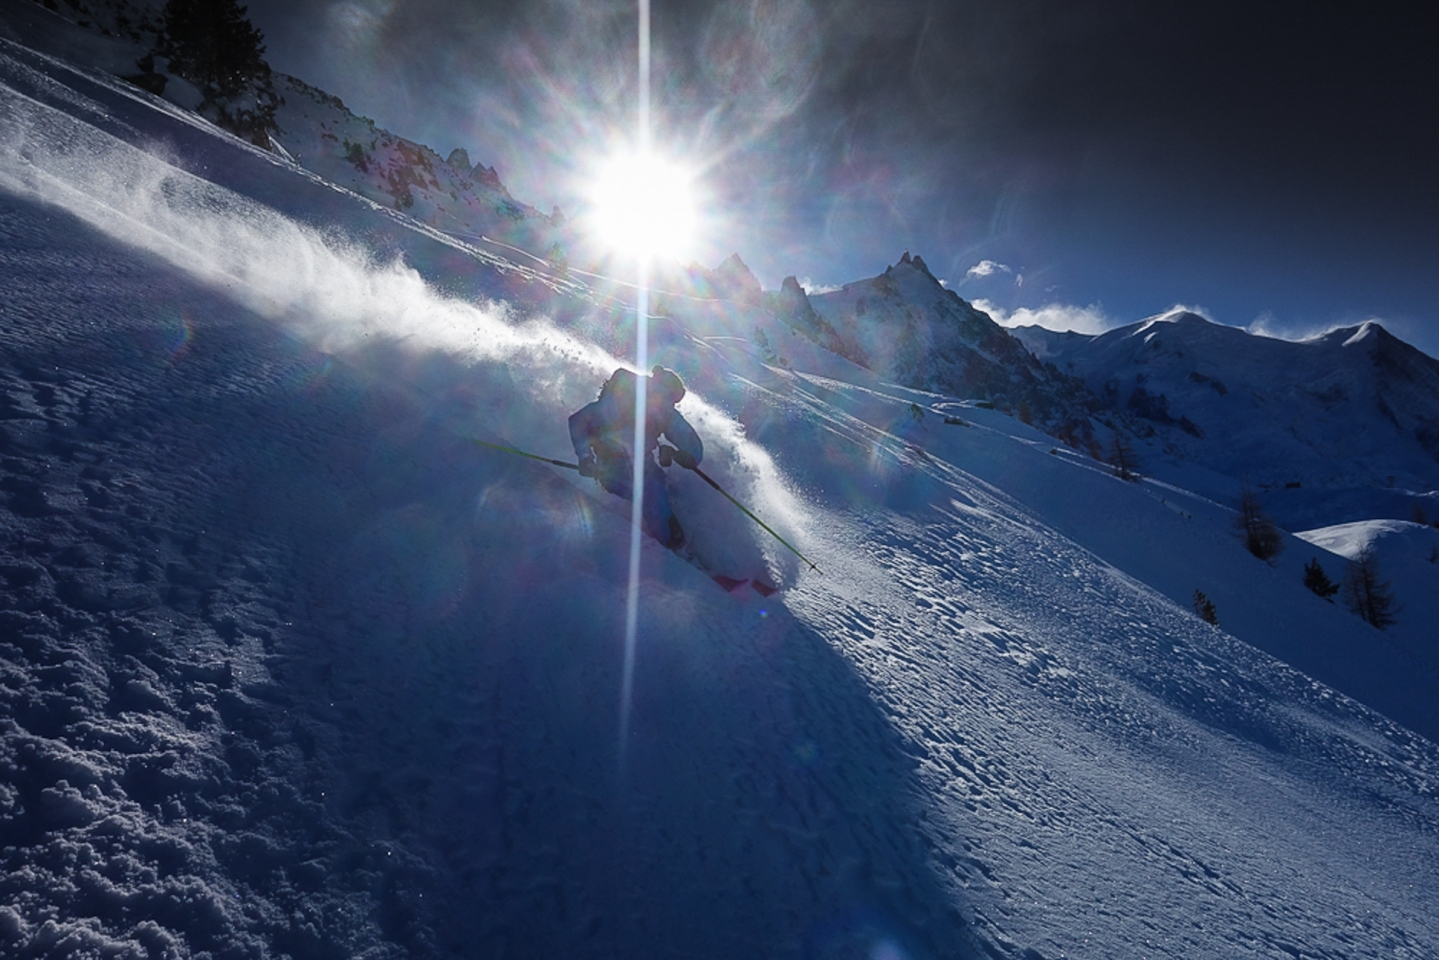 Ross Hewitt Guiding chamonix freeride 4